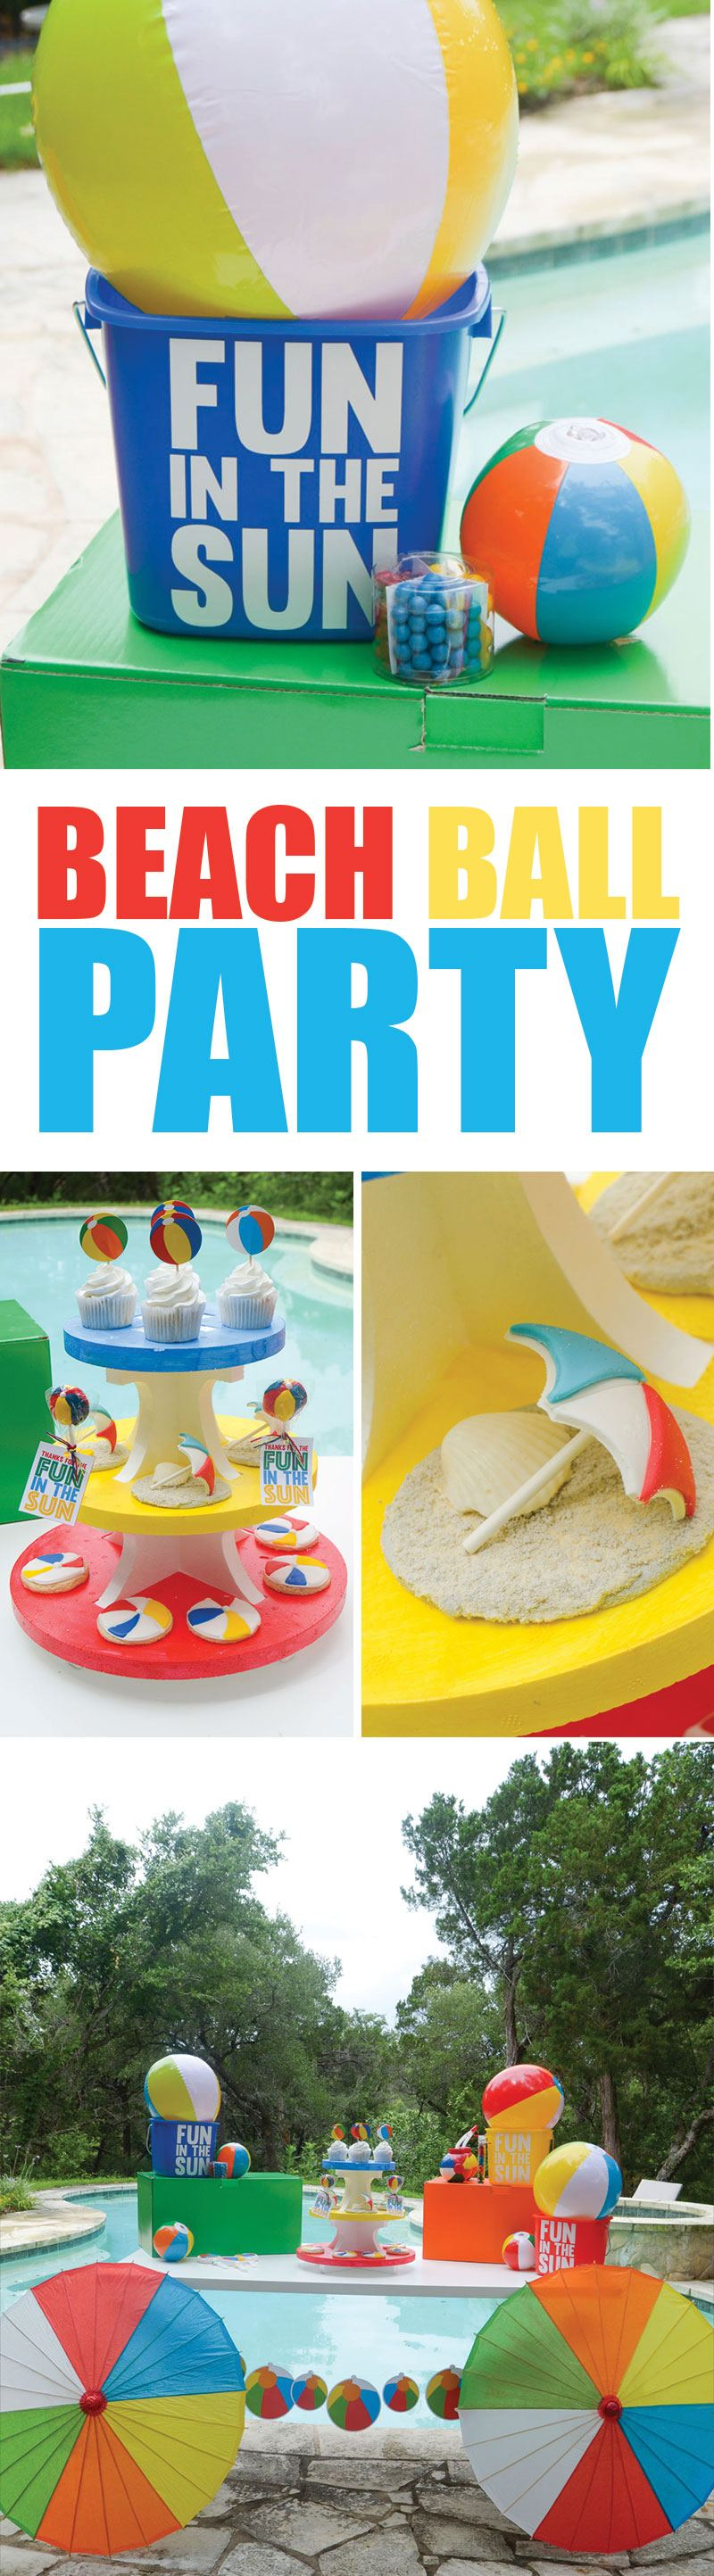 Beach Ball Summer Party by Lindi Haws of Love The Day